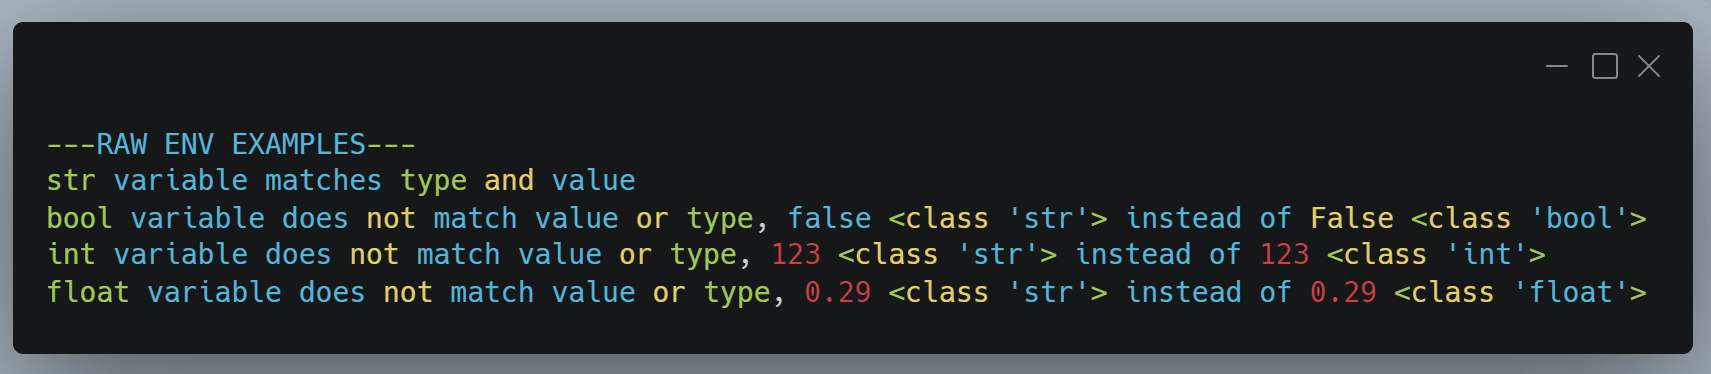 raw .env import output, only the string constant is correct on value AND type